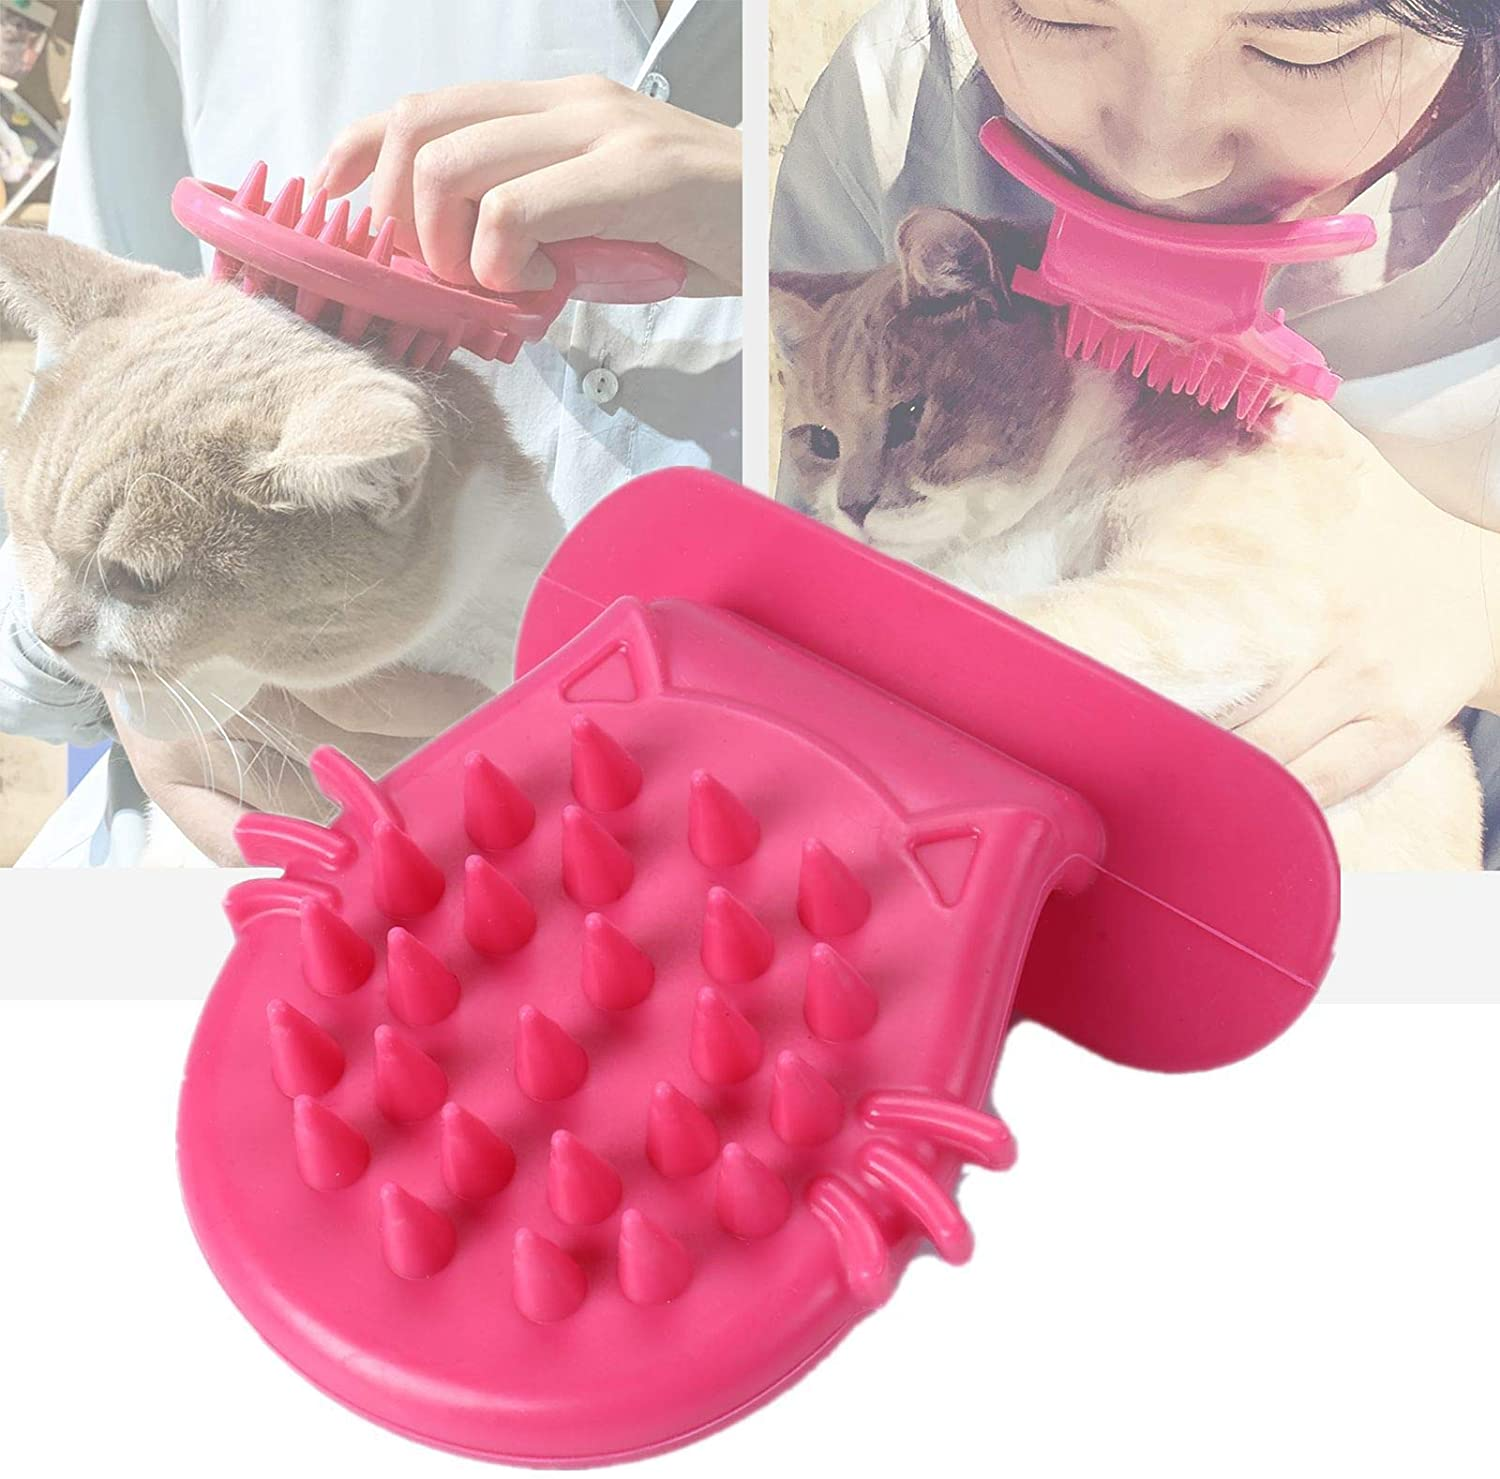 weird-gifts-cat-brush